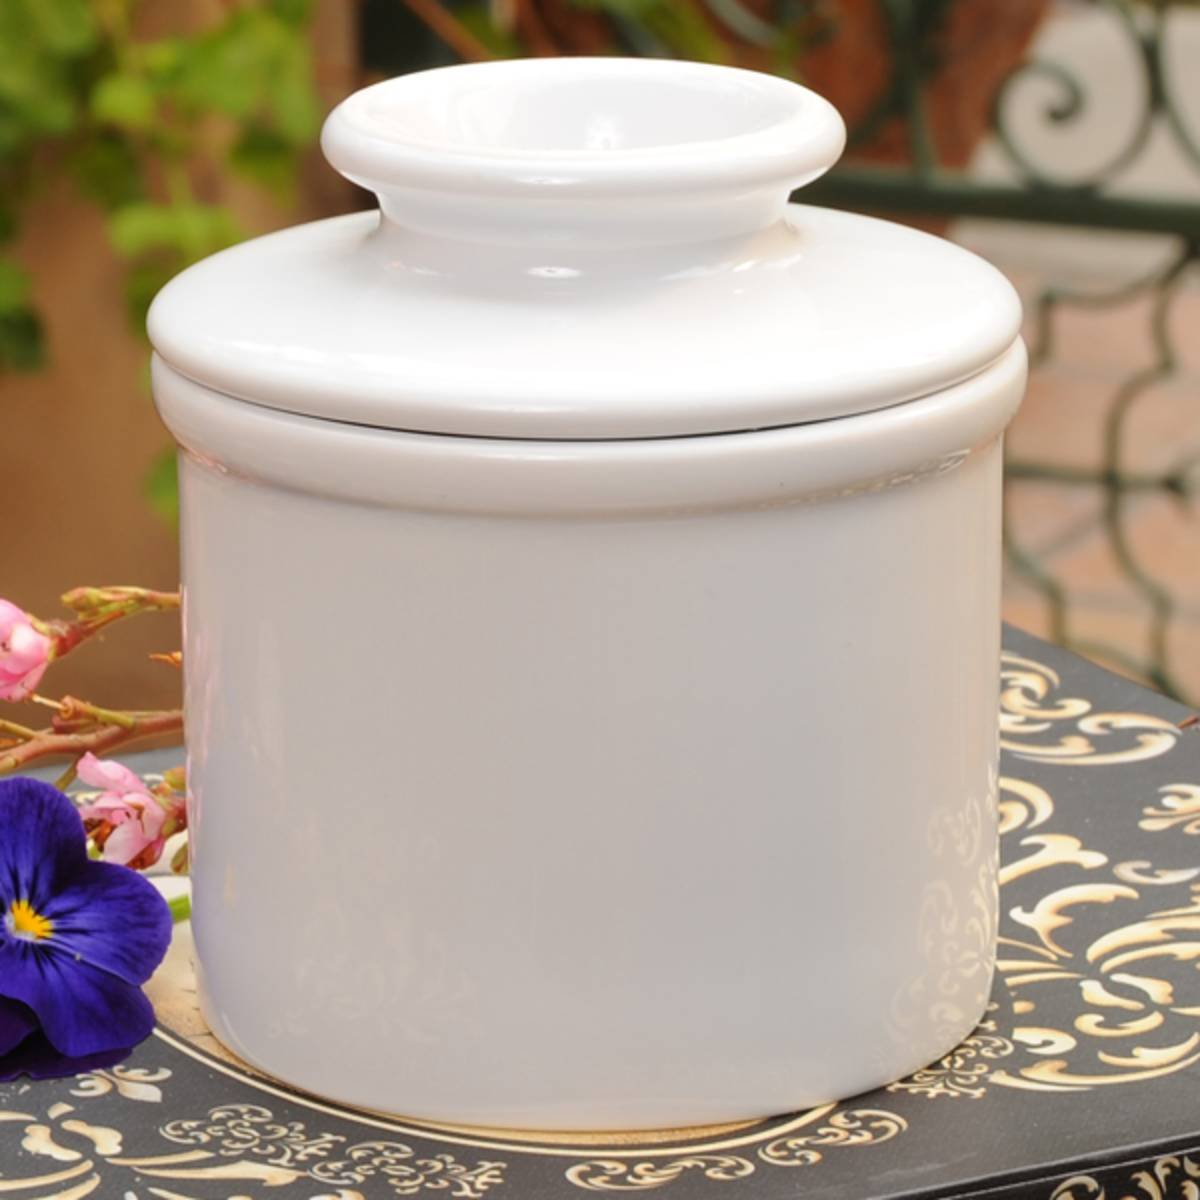 The Original Butter Bell Crock by L. Tremain, Retro & Matte Collection - White by Butter Bell (Image #2)